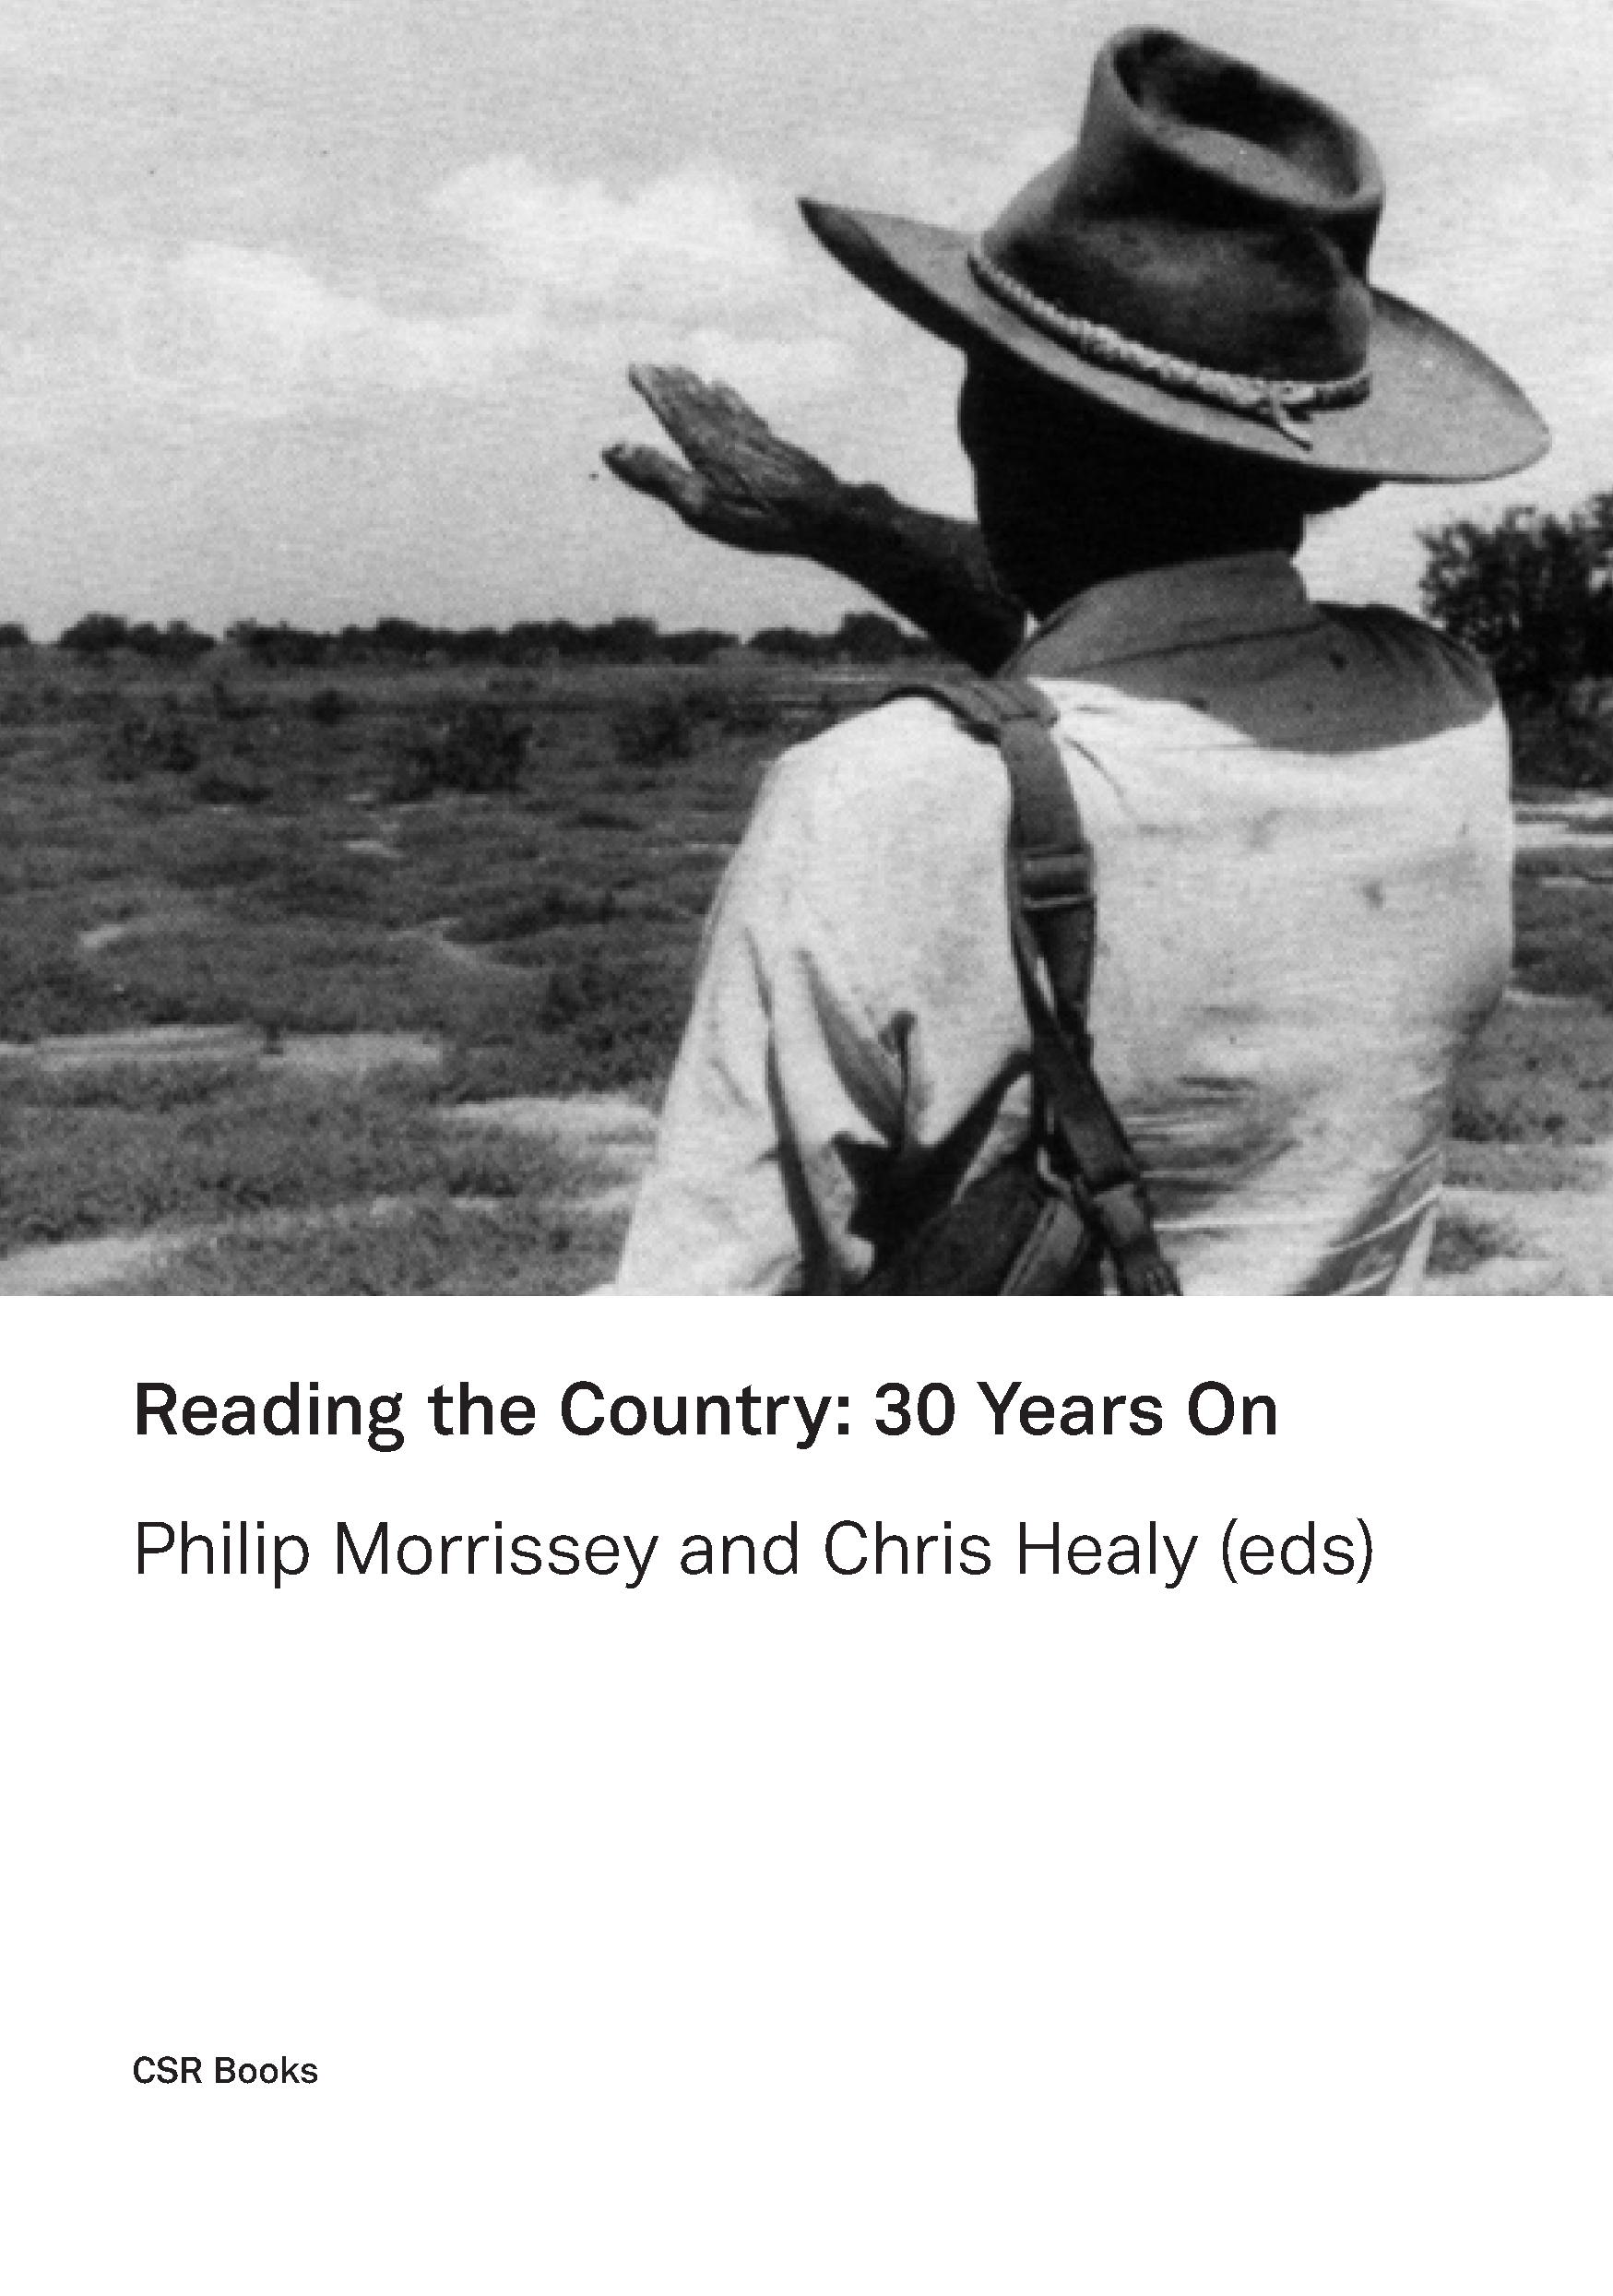 Cover - Reading the Country: 30 Years On